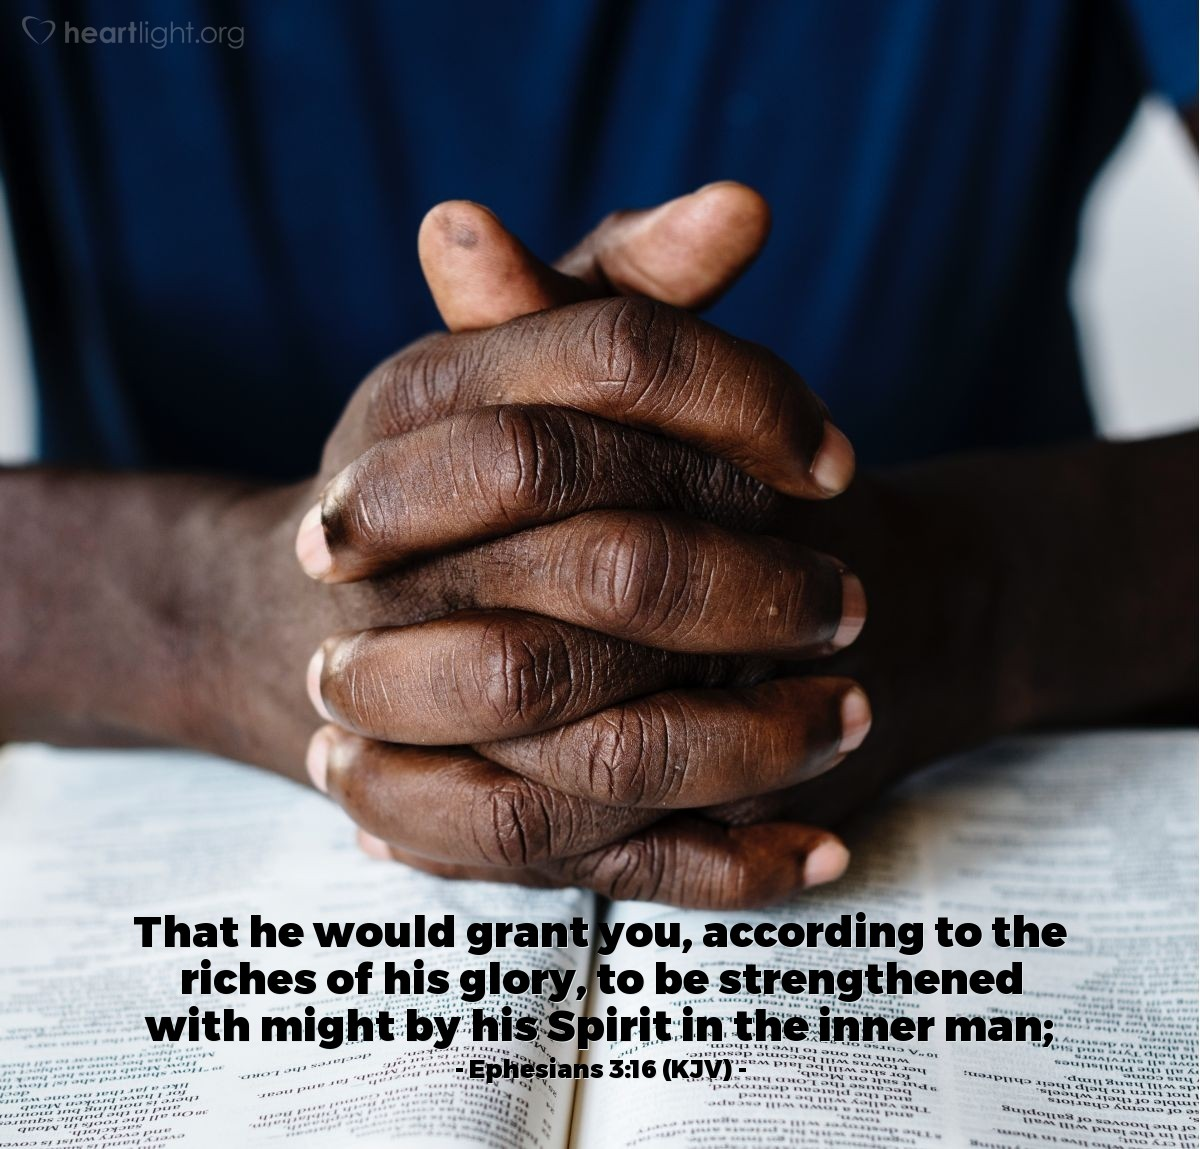 Illustration of Ephesians 3:16 (KJV) — That he would grant you, according to the riches of his glory, to be strengthened with might by his Spirit in the inner man.